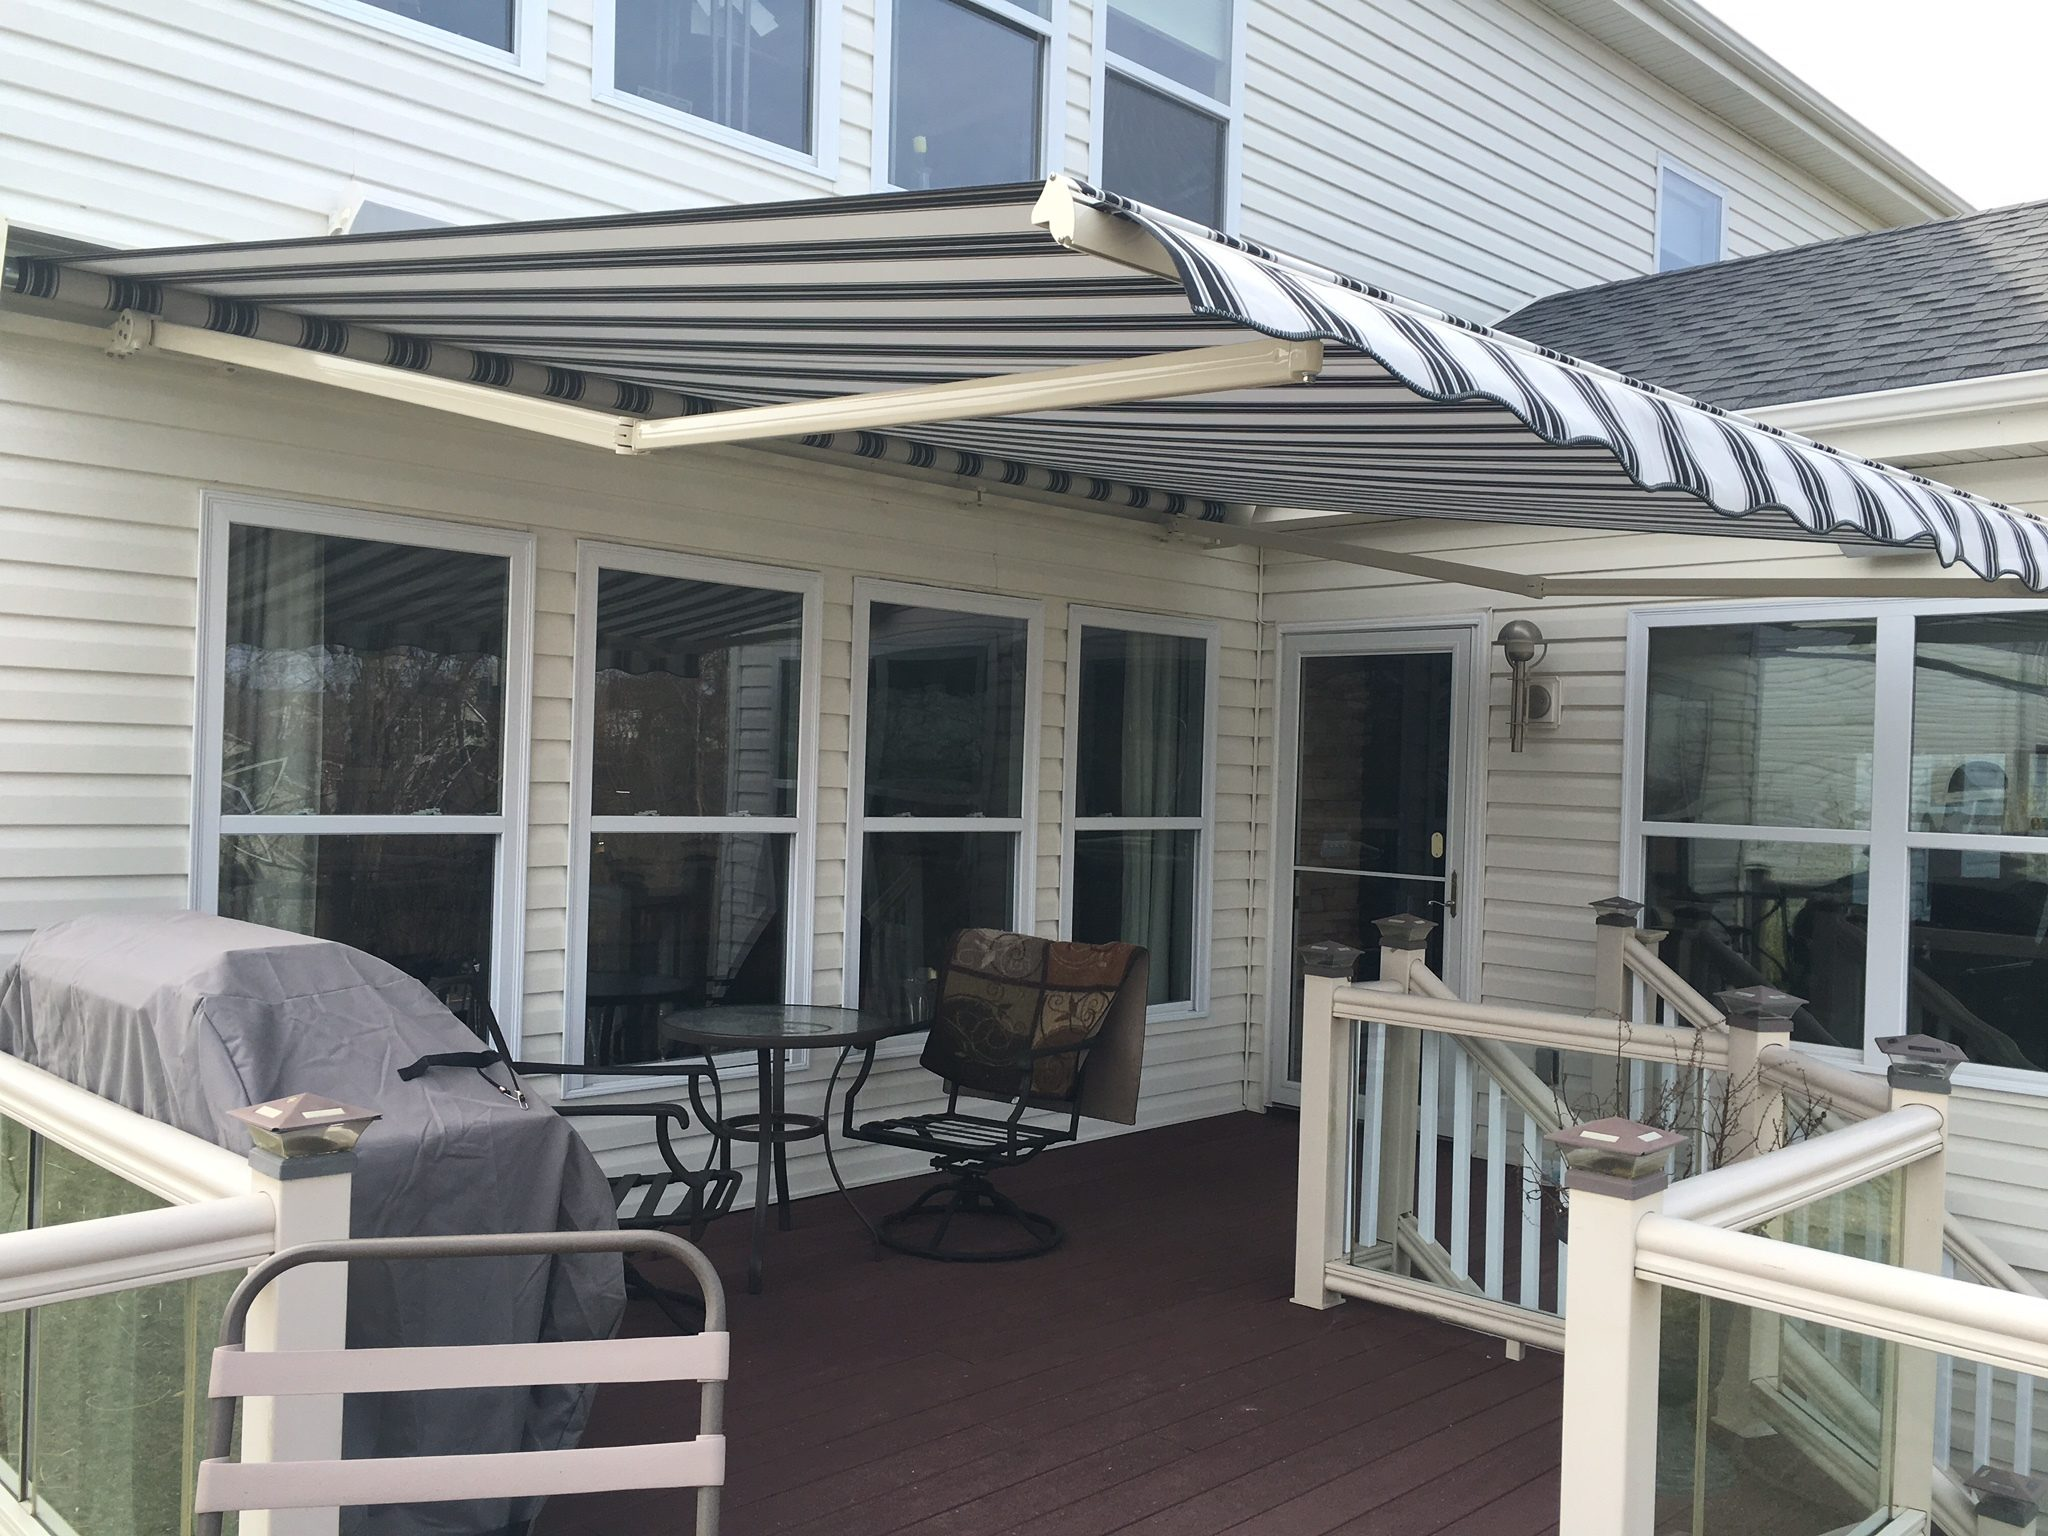 Top 431 Reviews And Complaints About Sunsetter Awnings